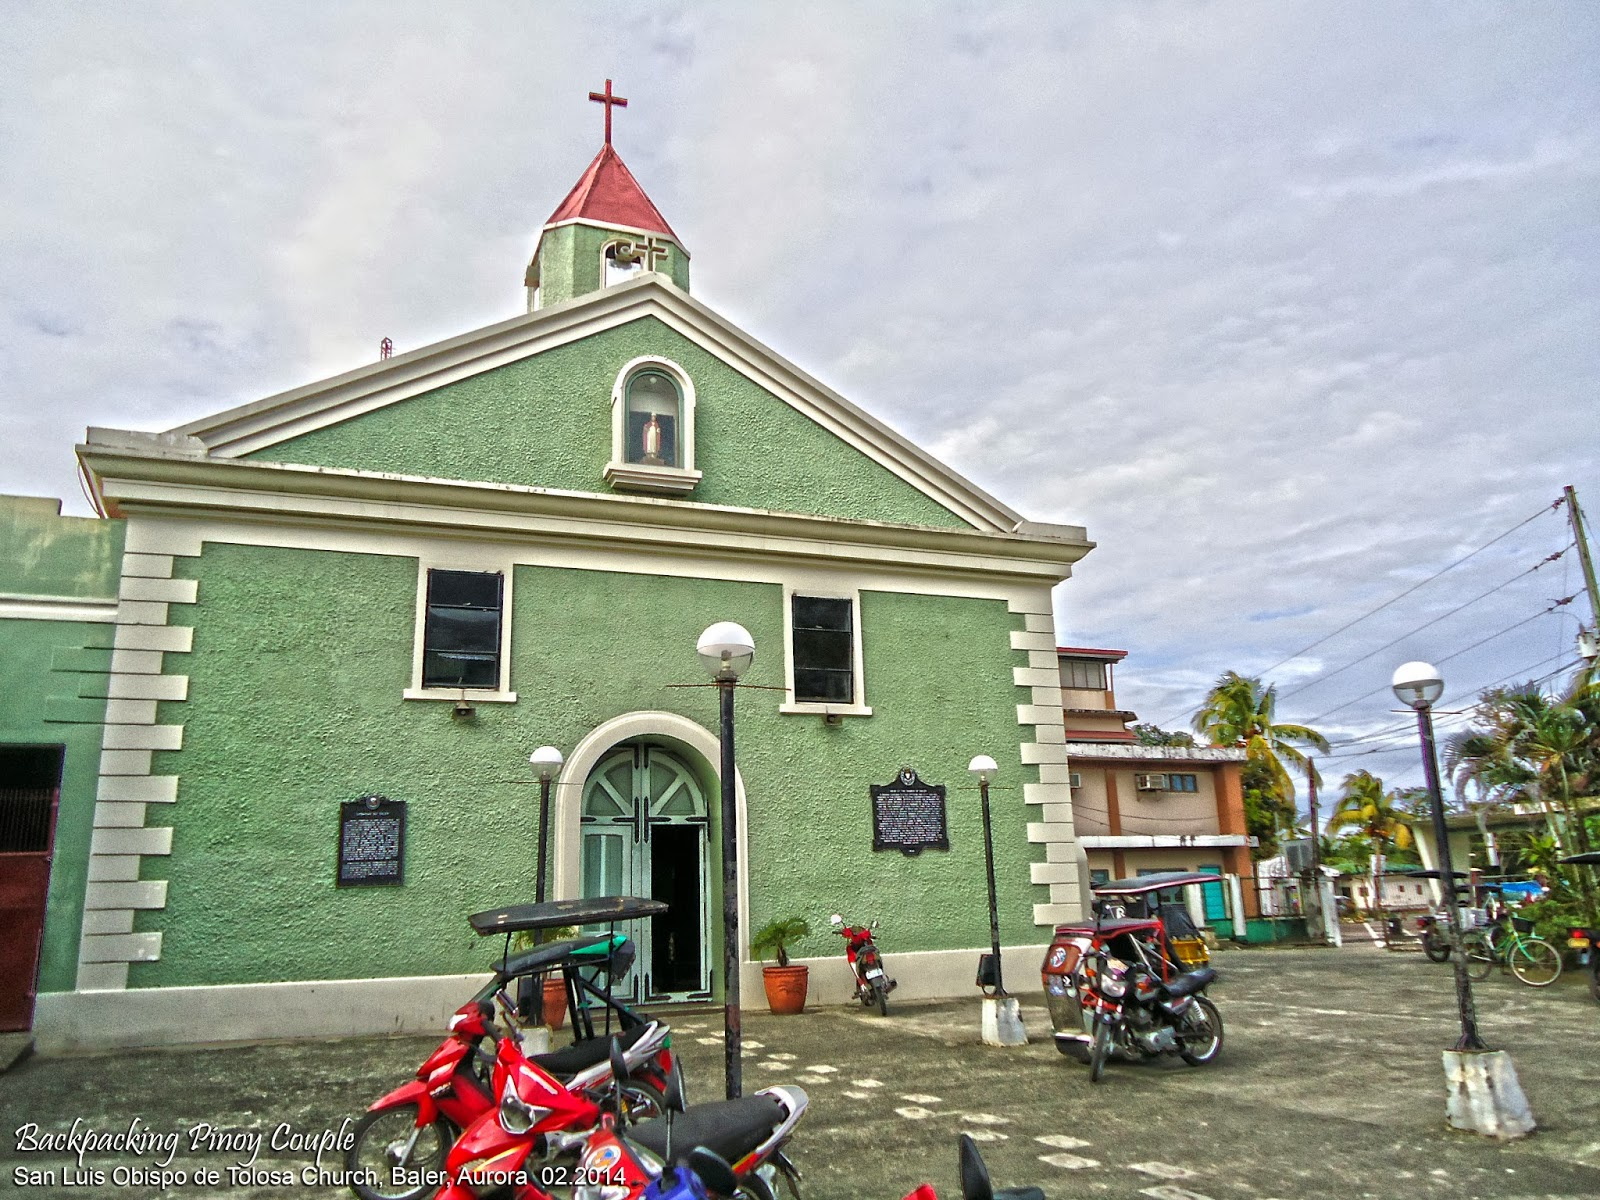 Baler, Backpacking Pinoy Couple, Philippines, It's More Fun in the Philippines, philippine travels, backpacking, backpacking philippines, how to go to aurora, how to go to baler, North Luzon, san luis obispo de tolosa church, baler church, siege of baler